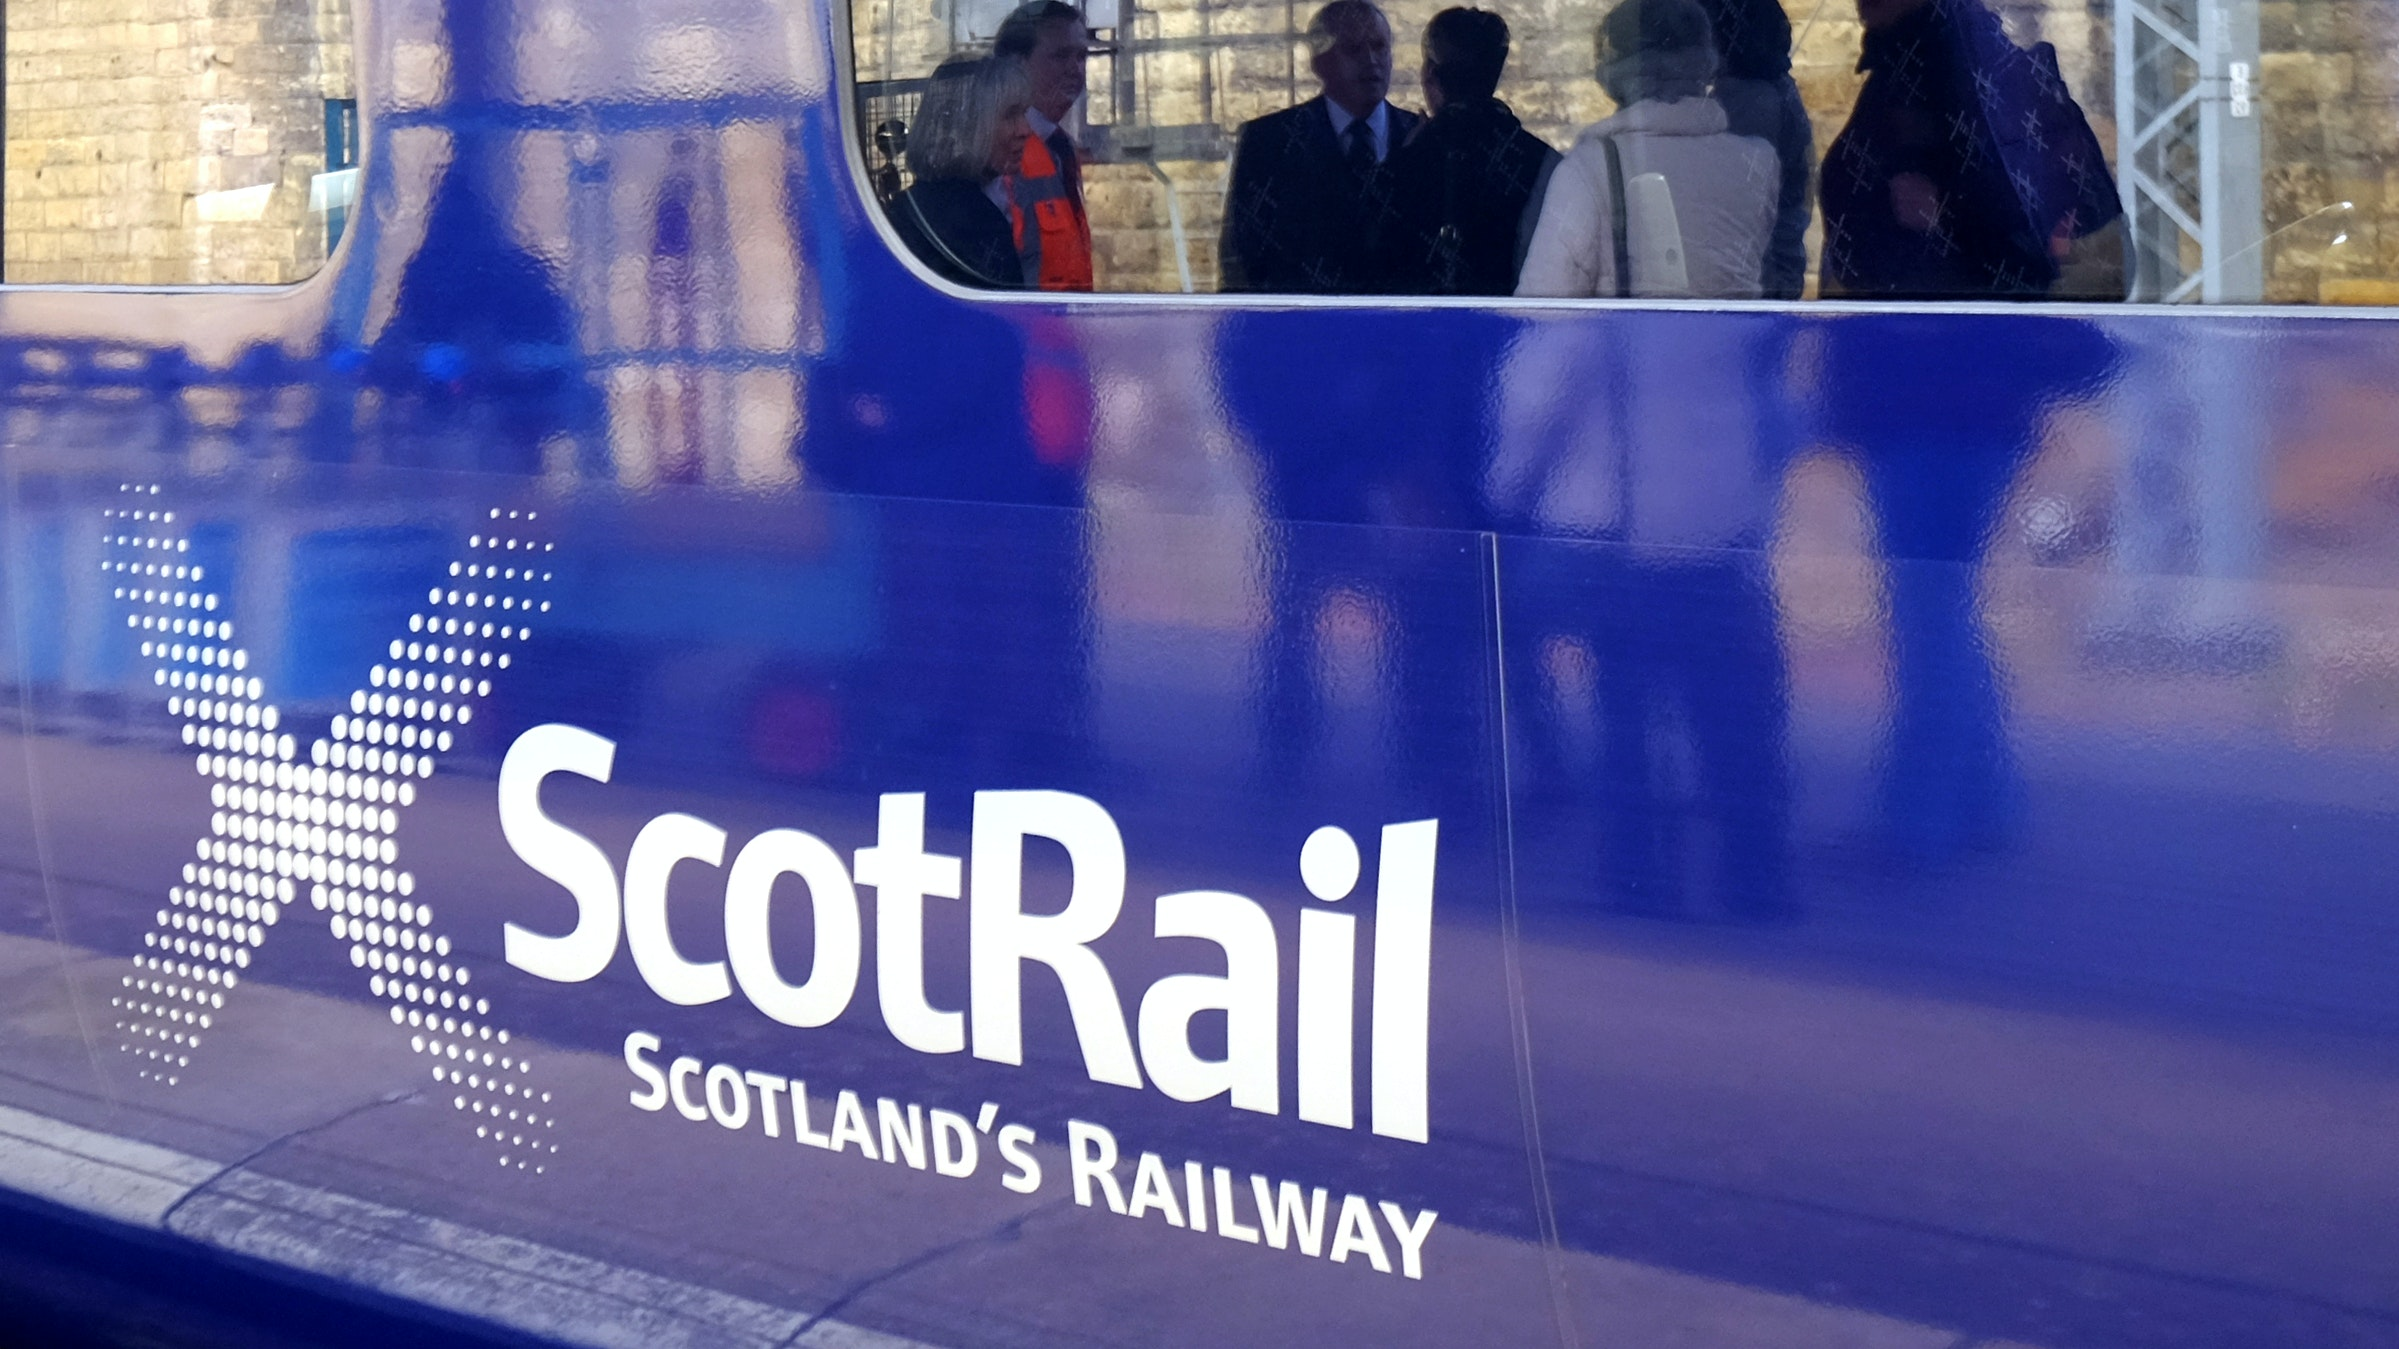 High Street: Glasgow train station closes as emergency services deal with incident - national scot